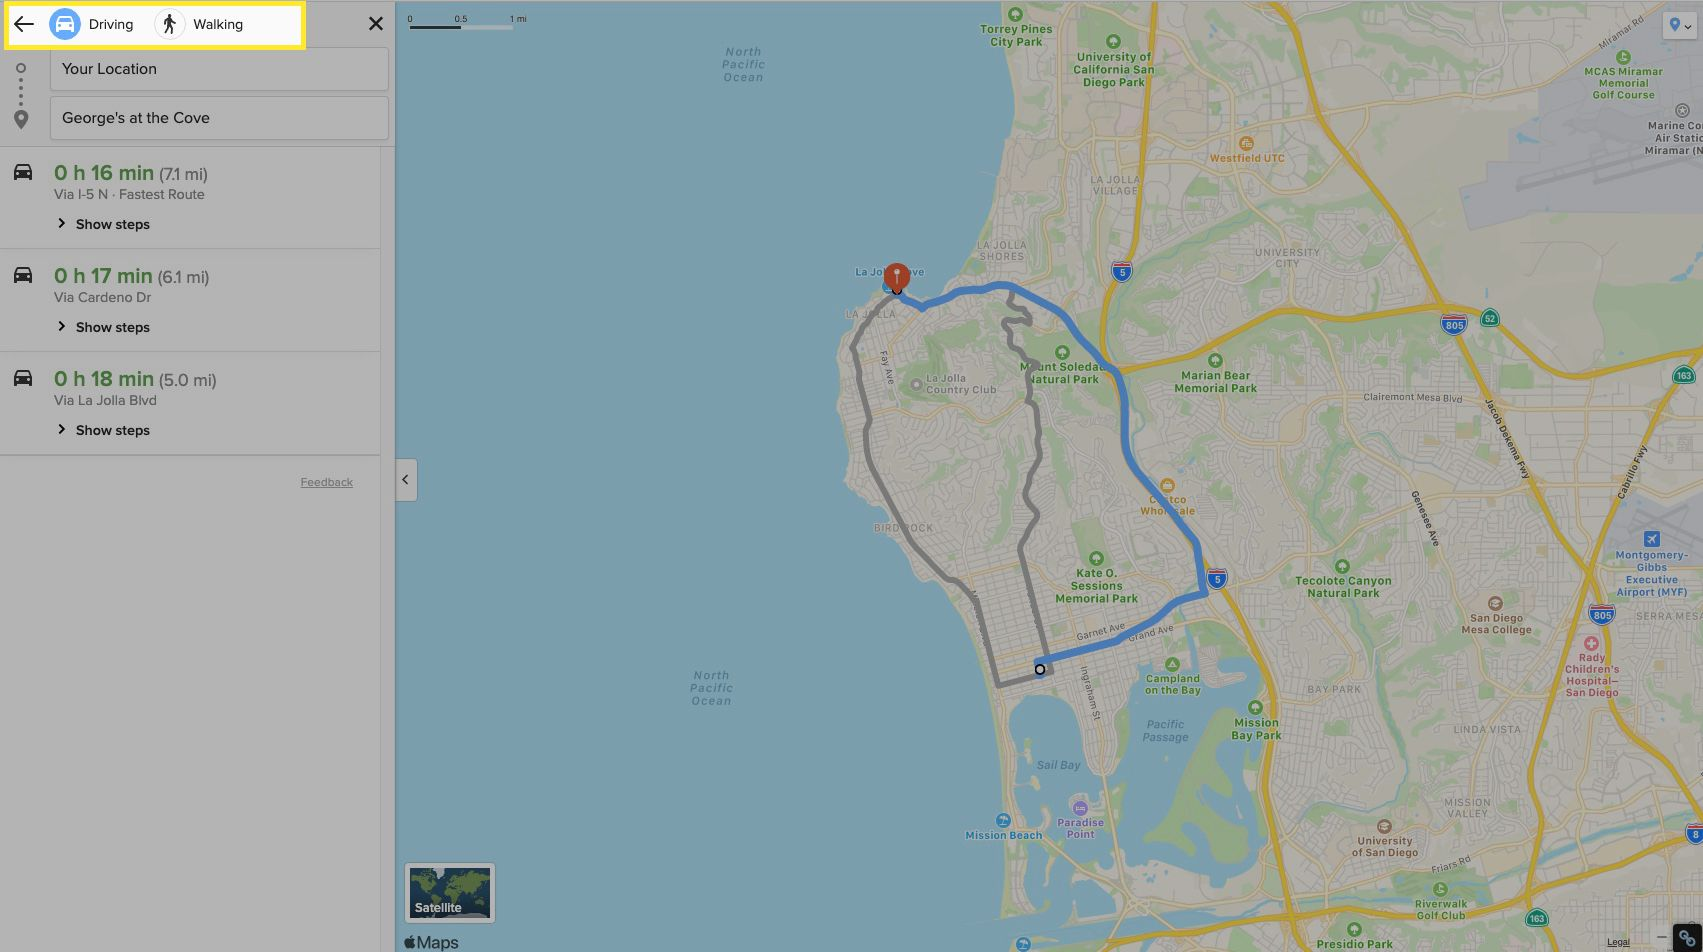 Select Driving or Walking to see your various routes.